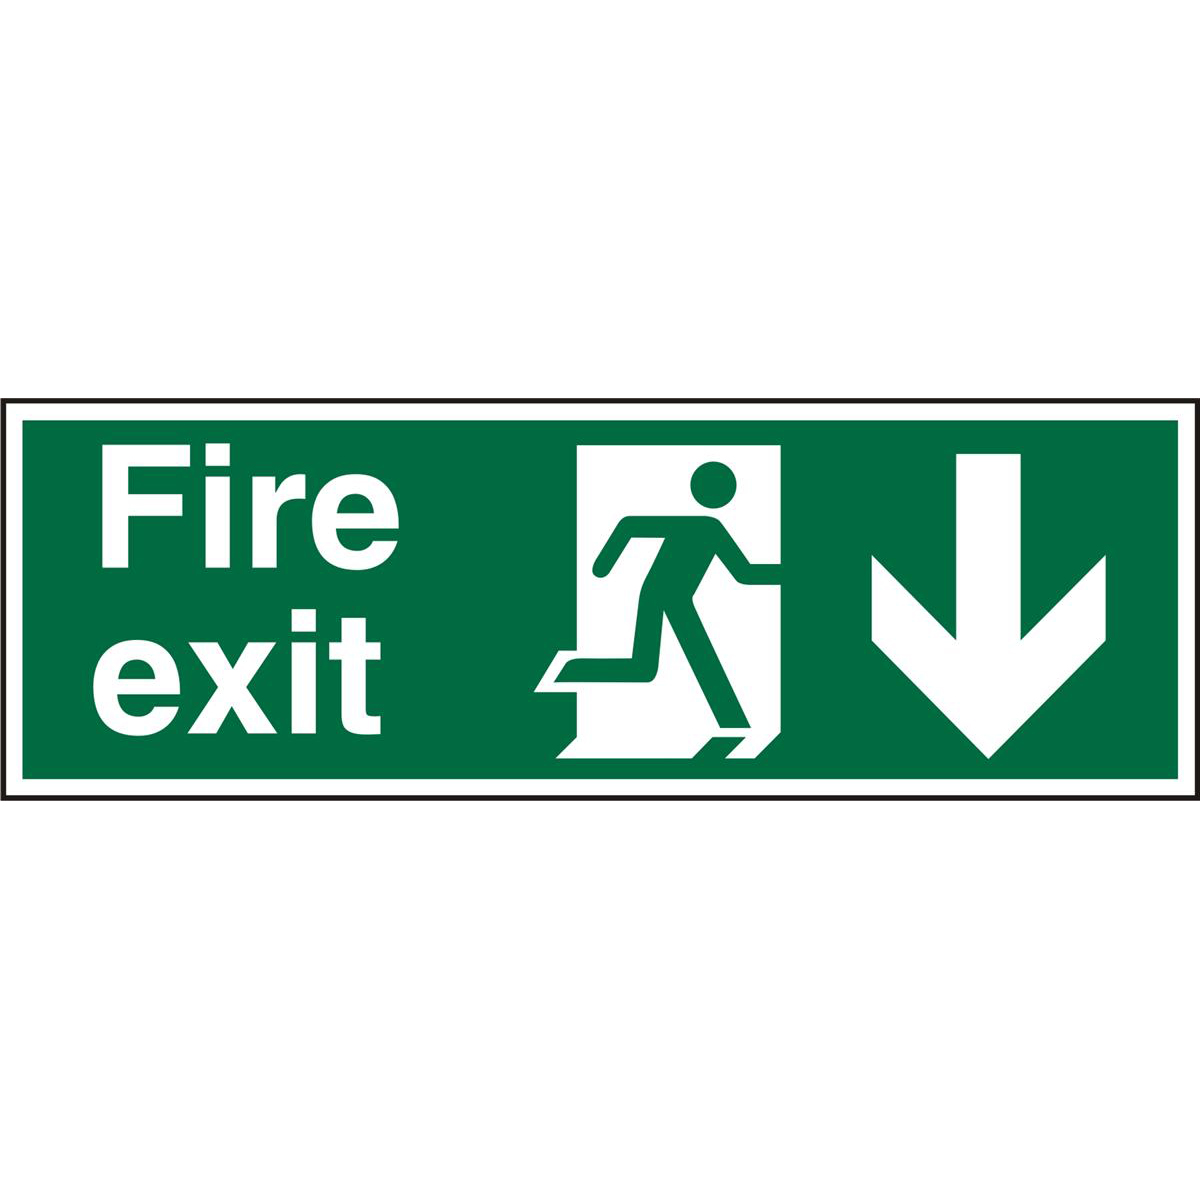 PrestigeSign 2mm 300x100 FireExit Running Right &Arrow Down Ref ACSP124300x100 Up to 10 Day Leadtime